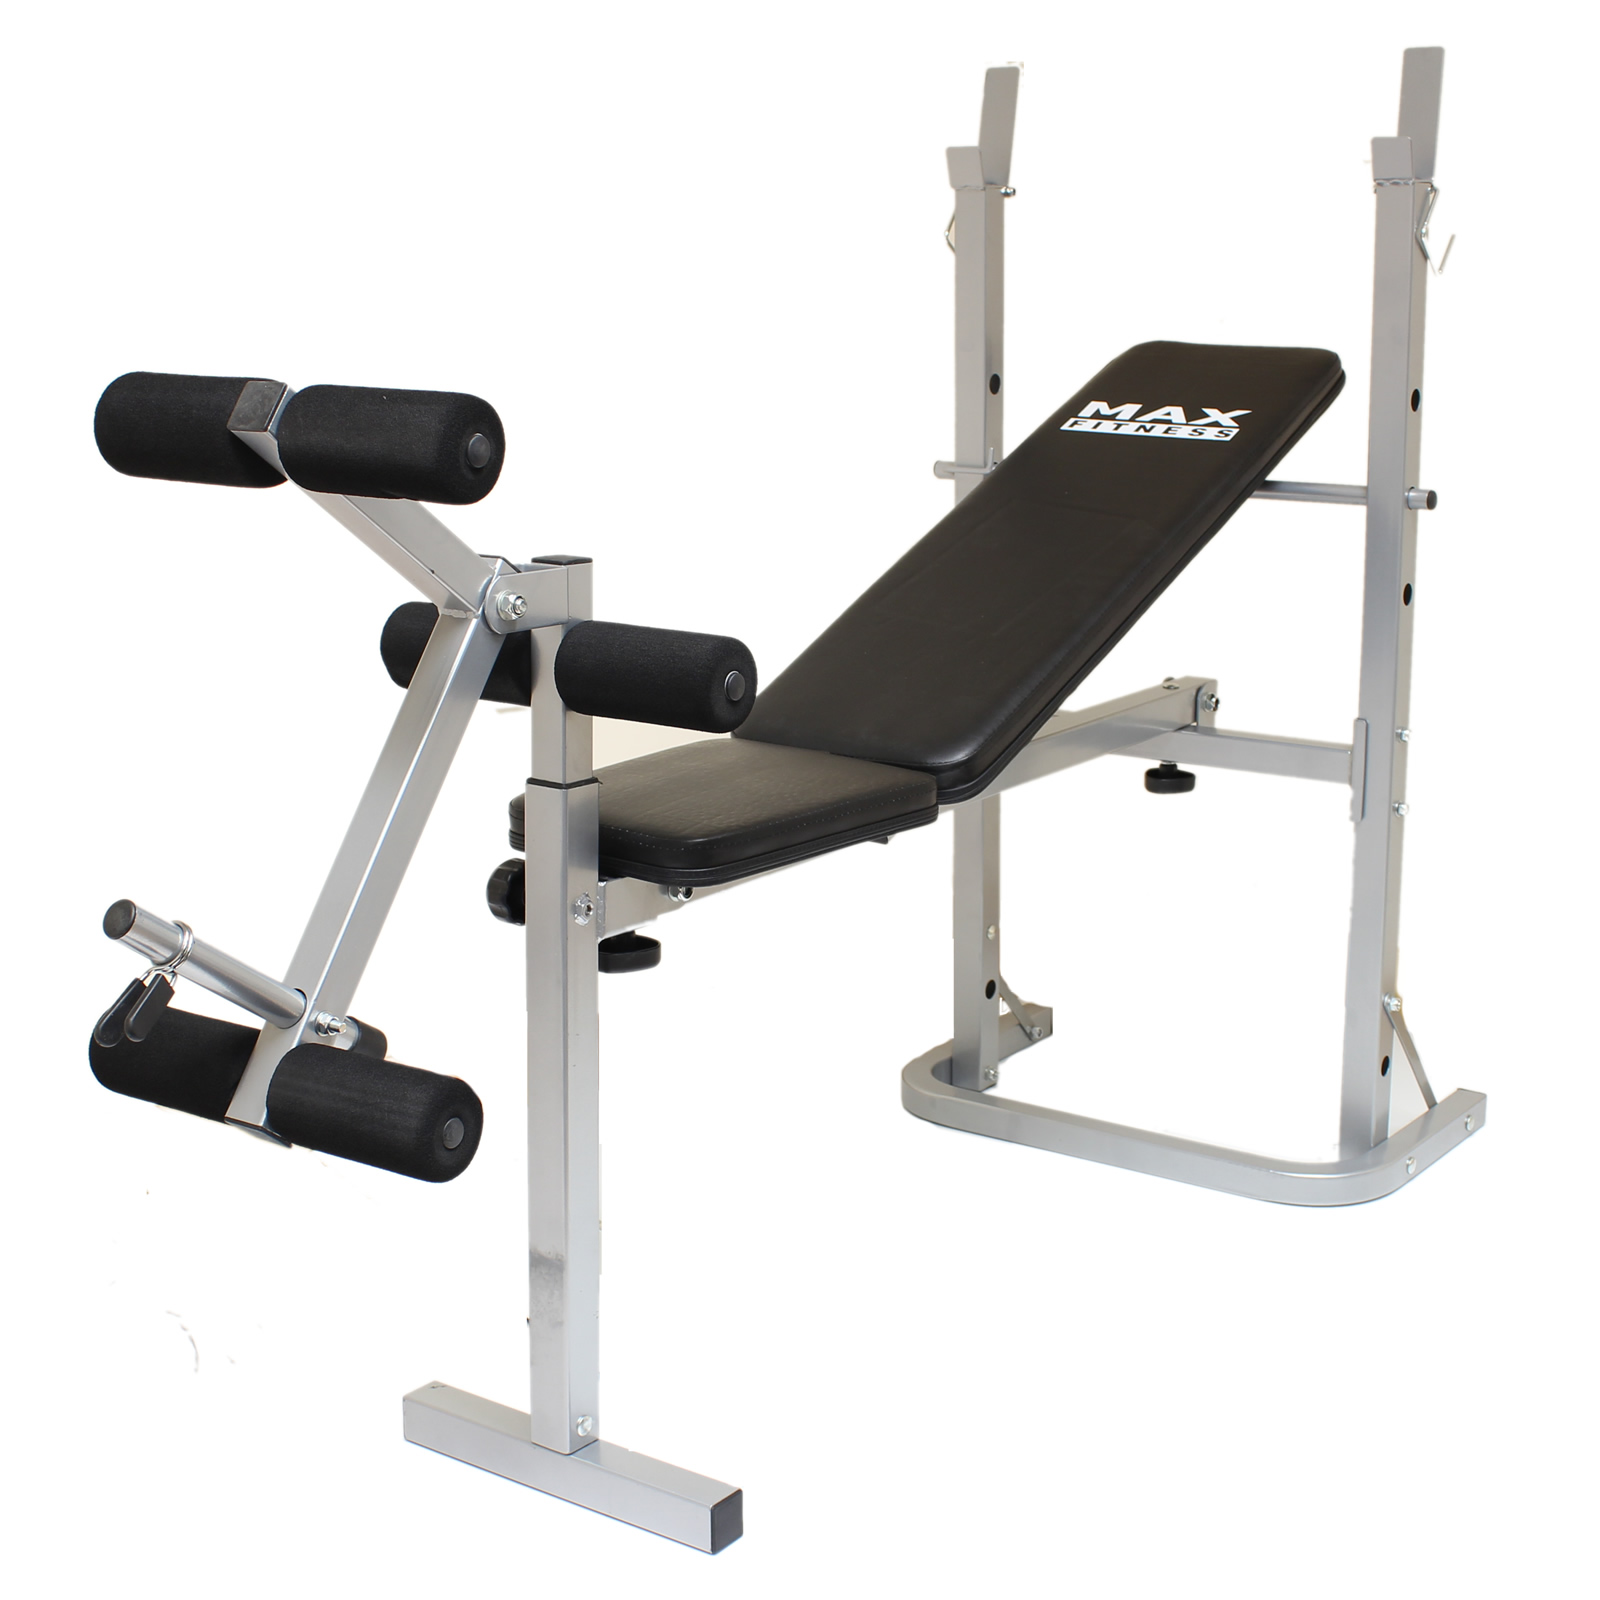 Max Fitness Folding Weight Bench Home Gym Exercise Lift